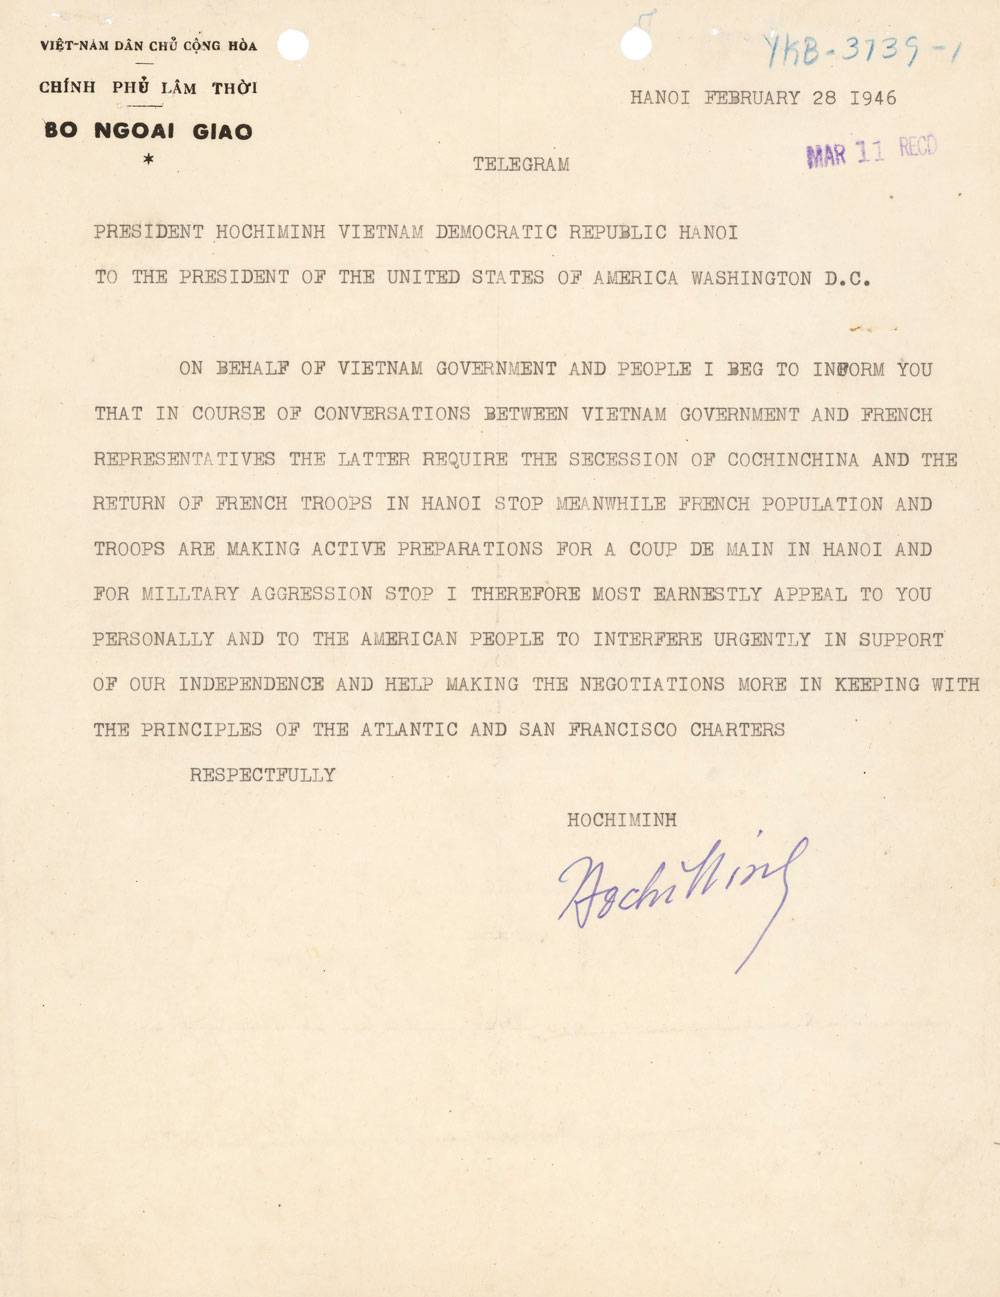 Letter from Ho Chi Minh to U.S. President Harry Truman, February 28, 1946